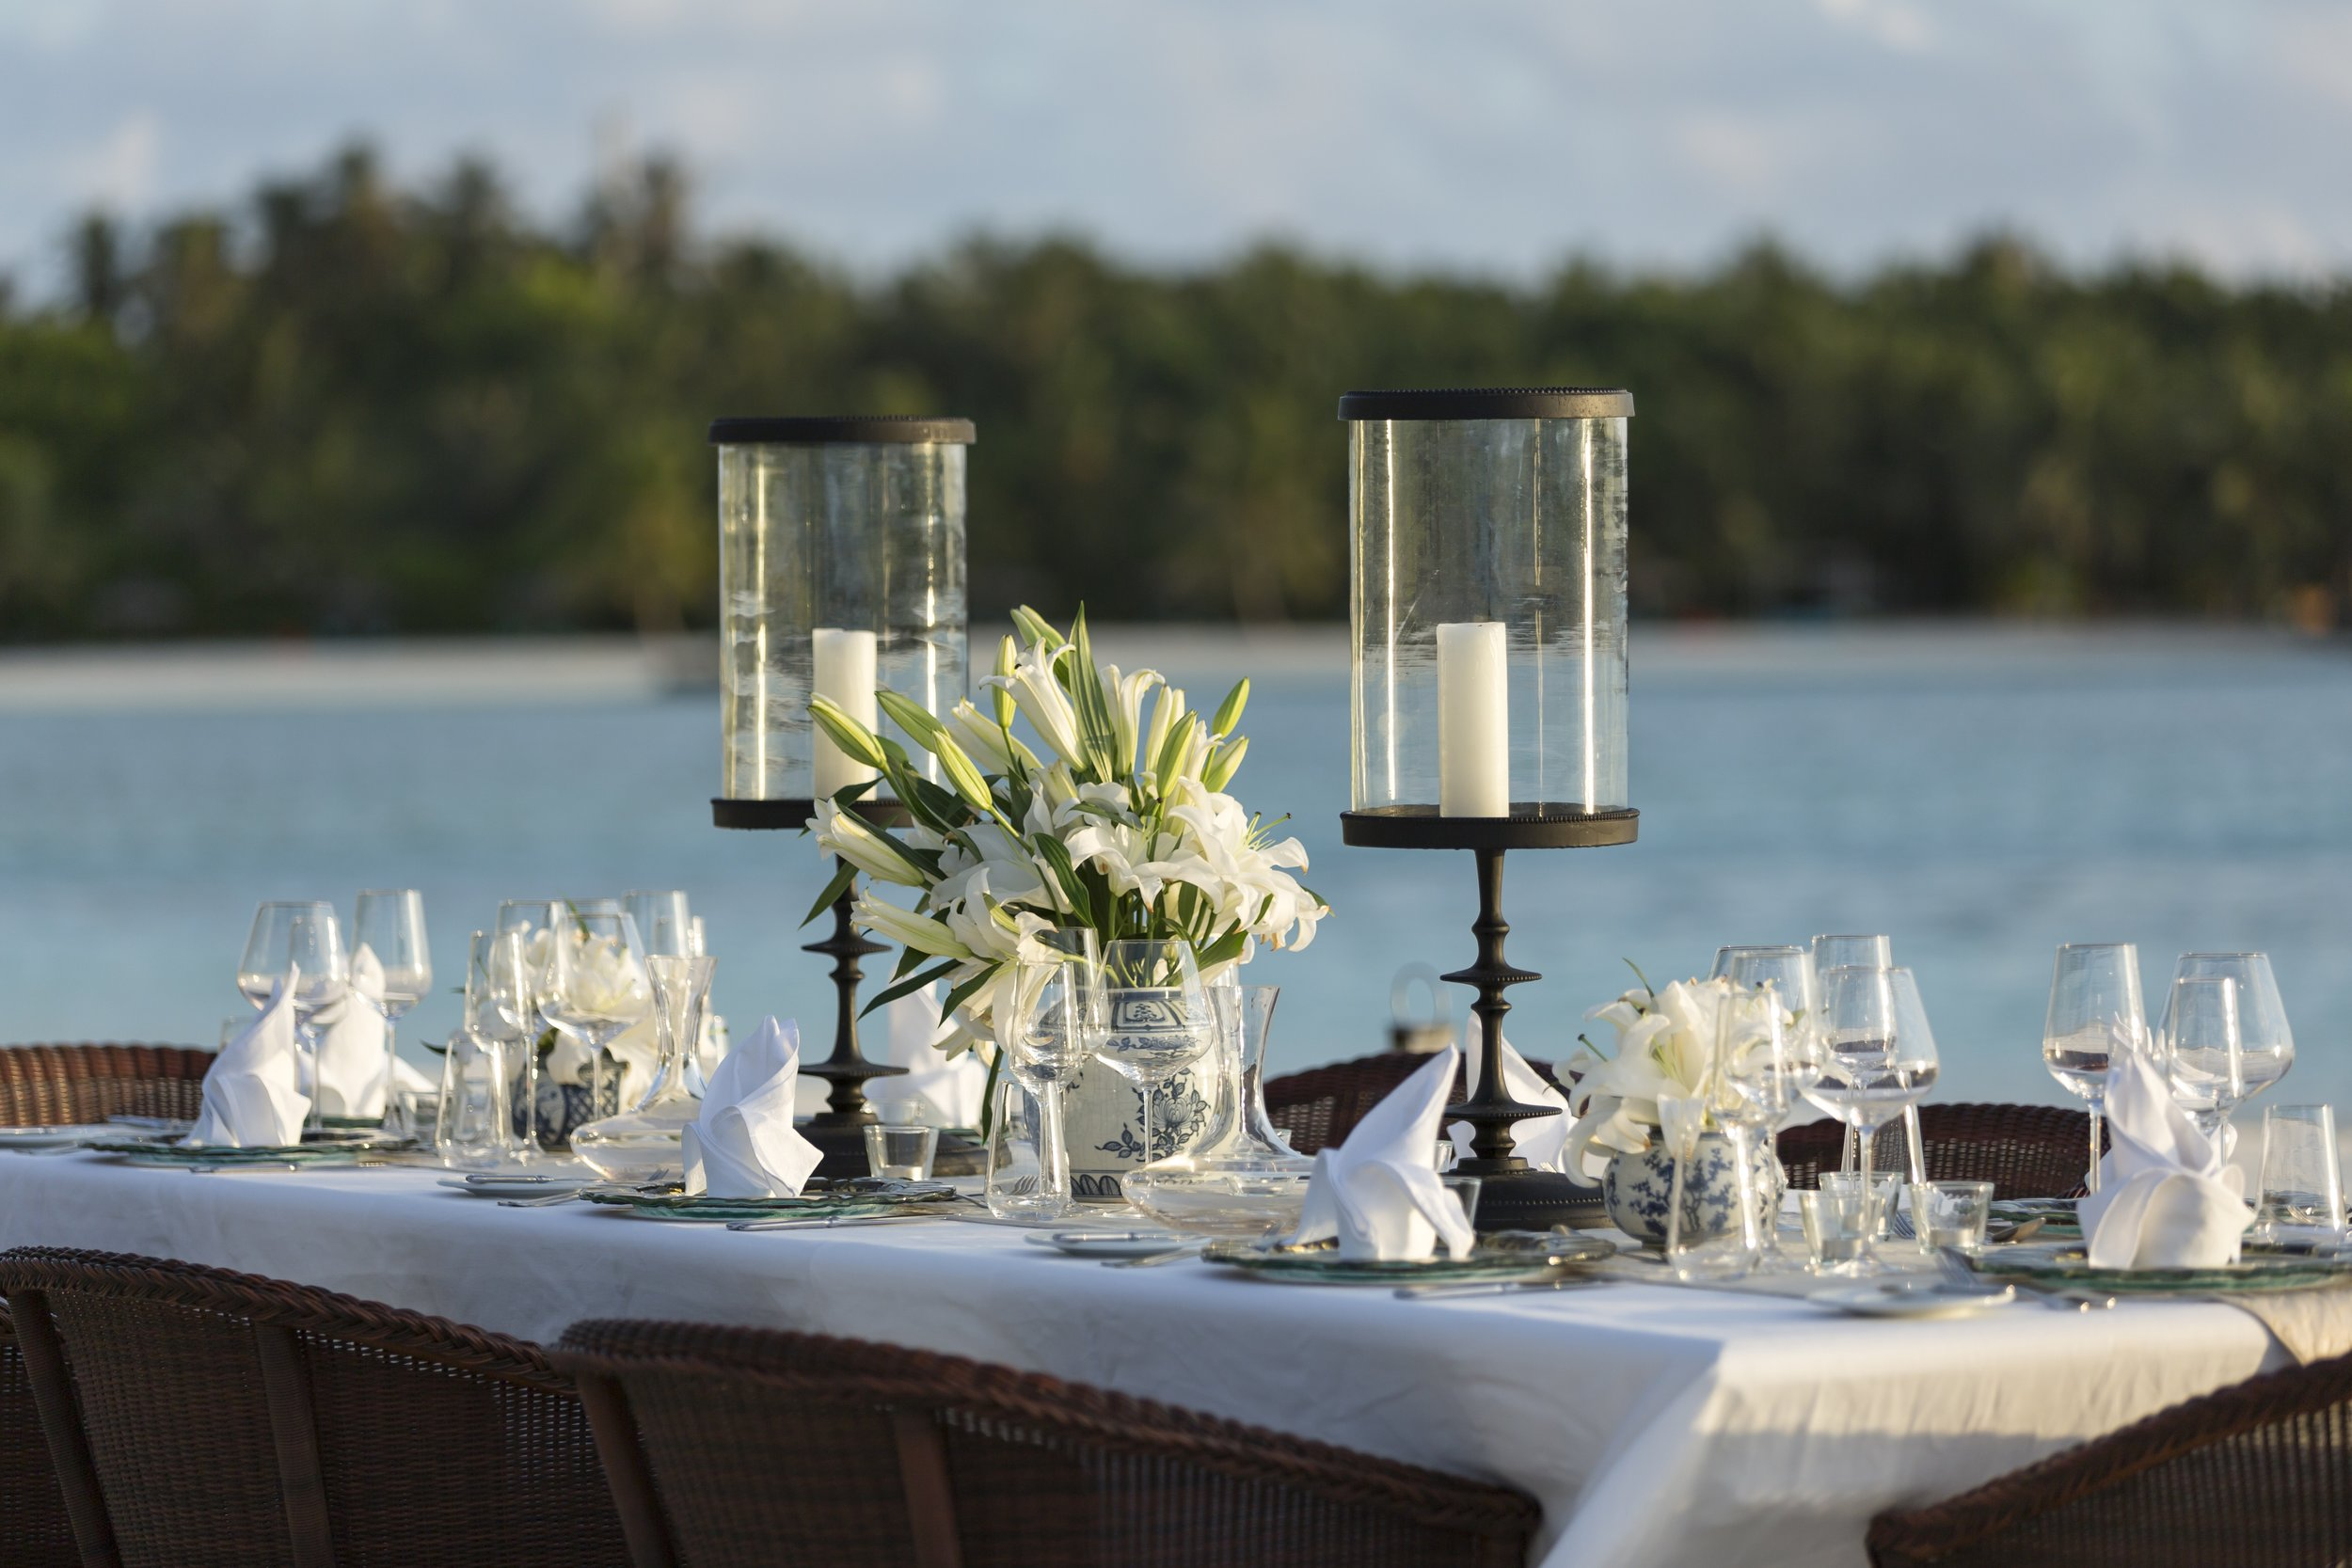 Naladhu_Private_Island_Dinner_Closeup.jpg